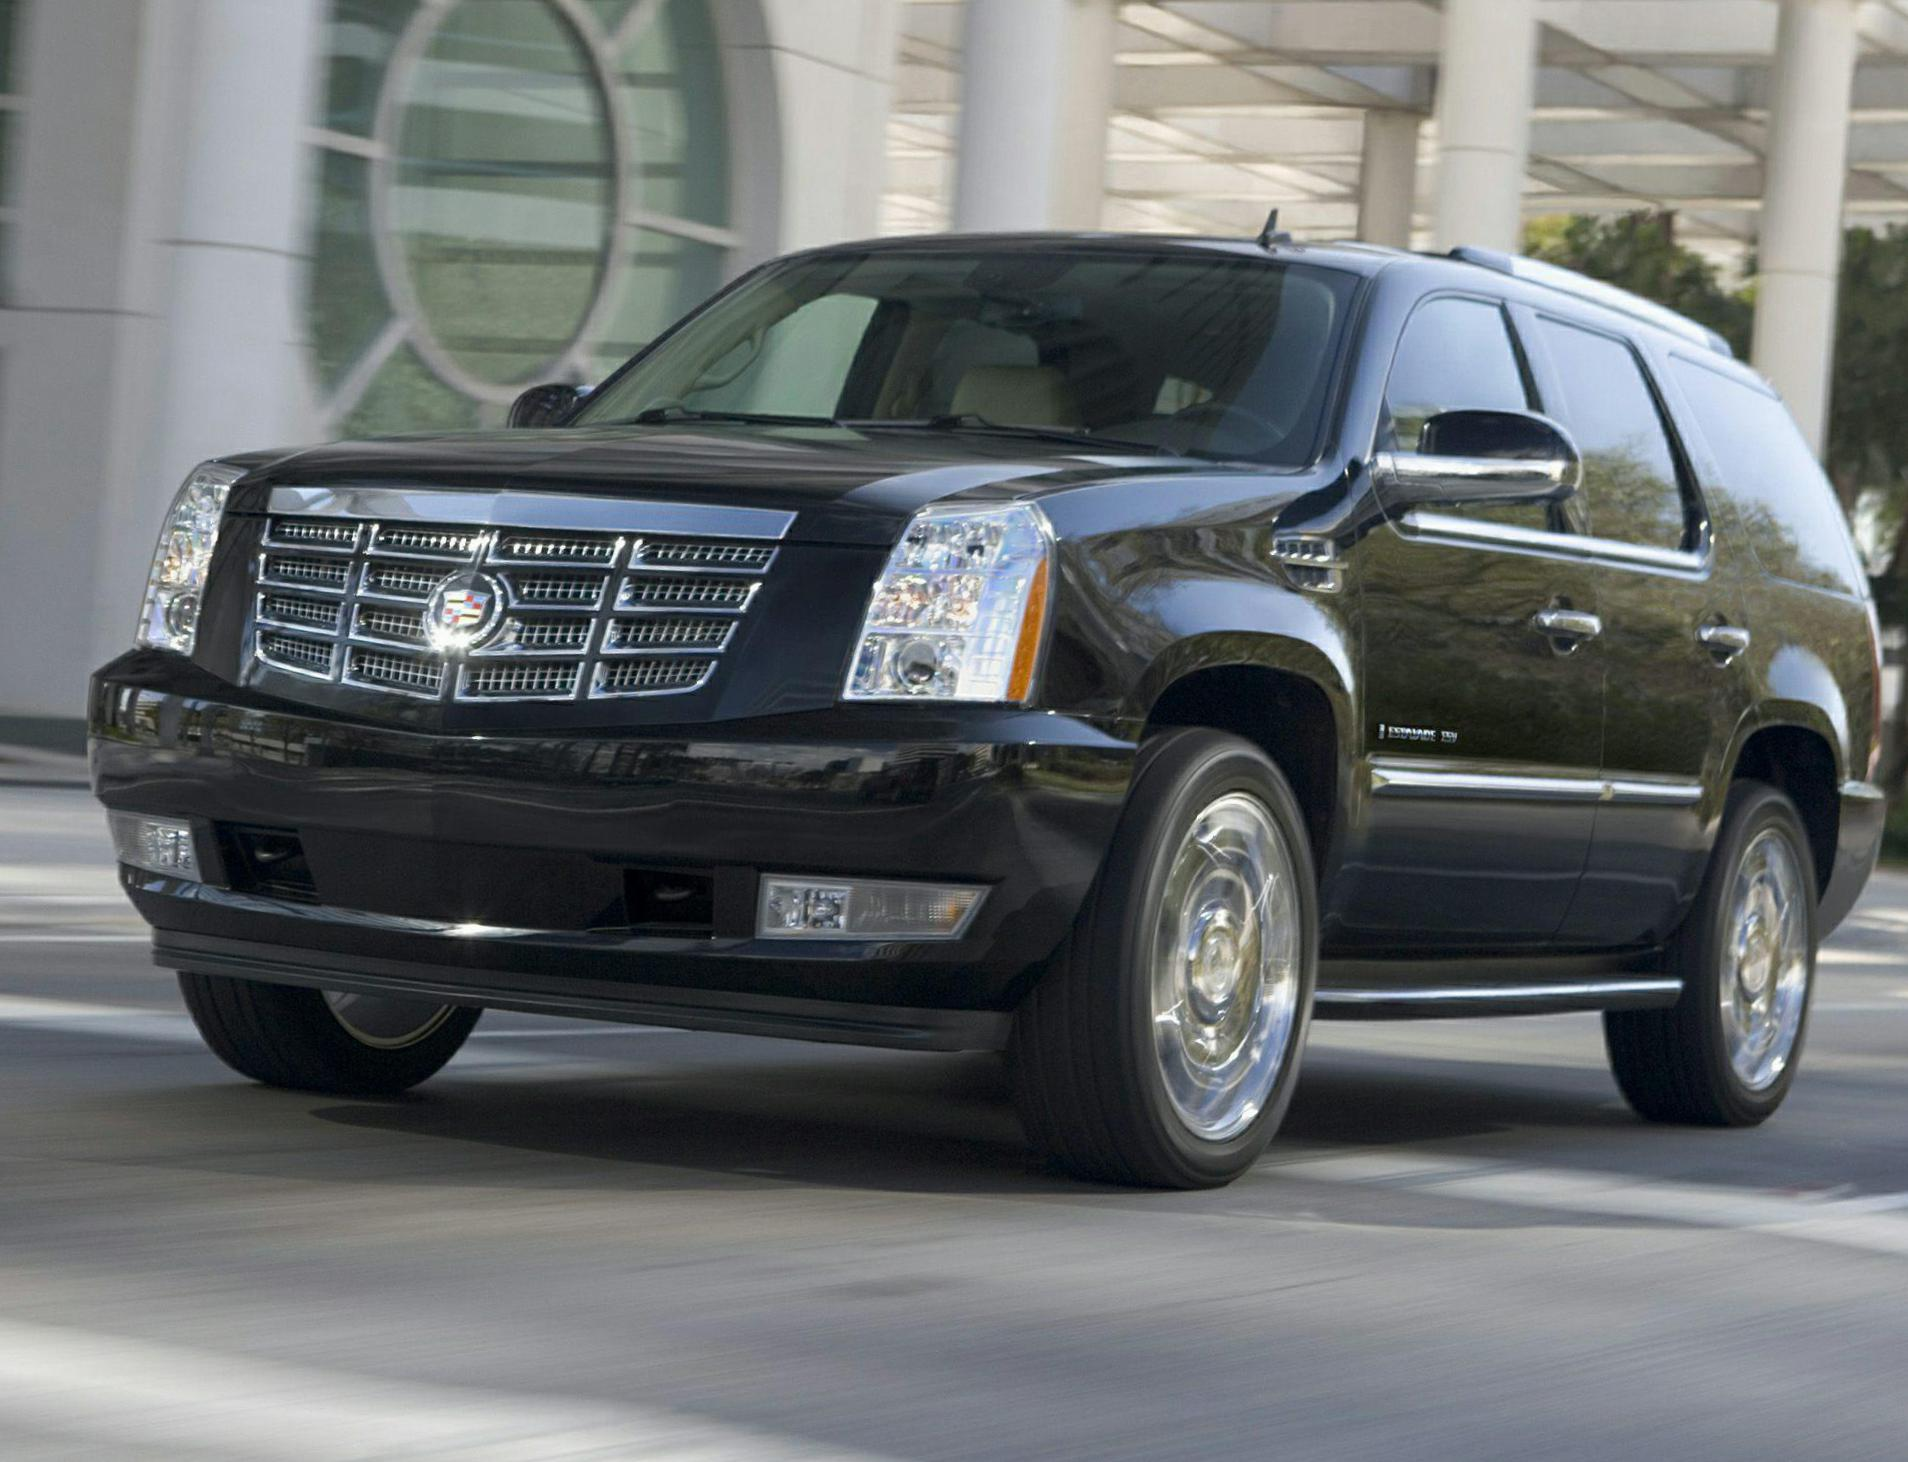 Escalade Cadillac approved suv